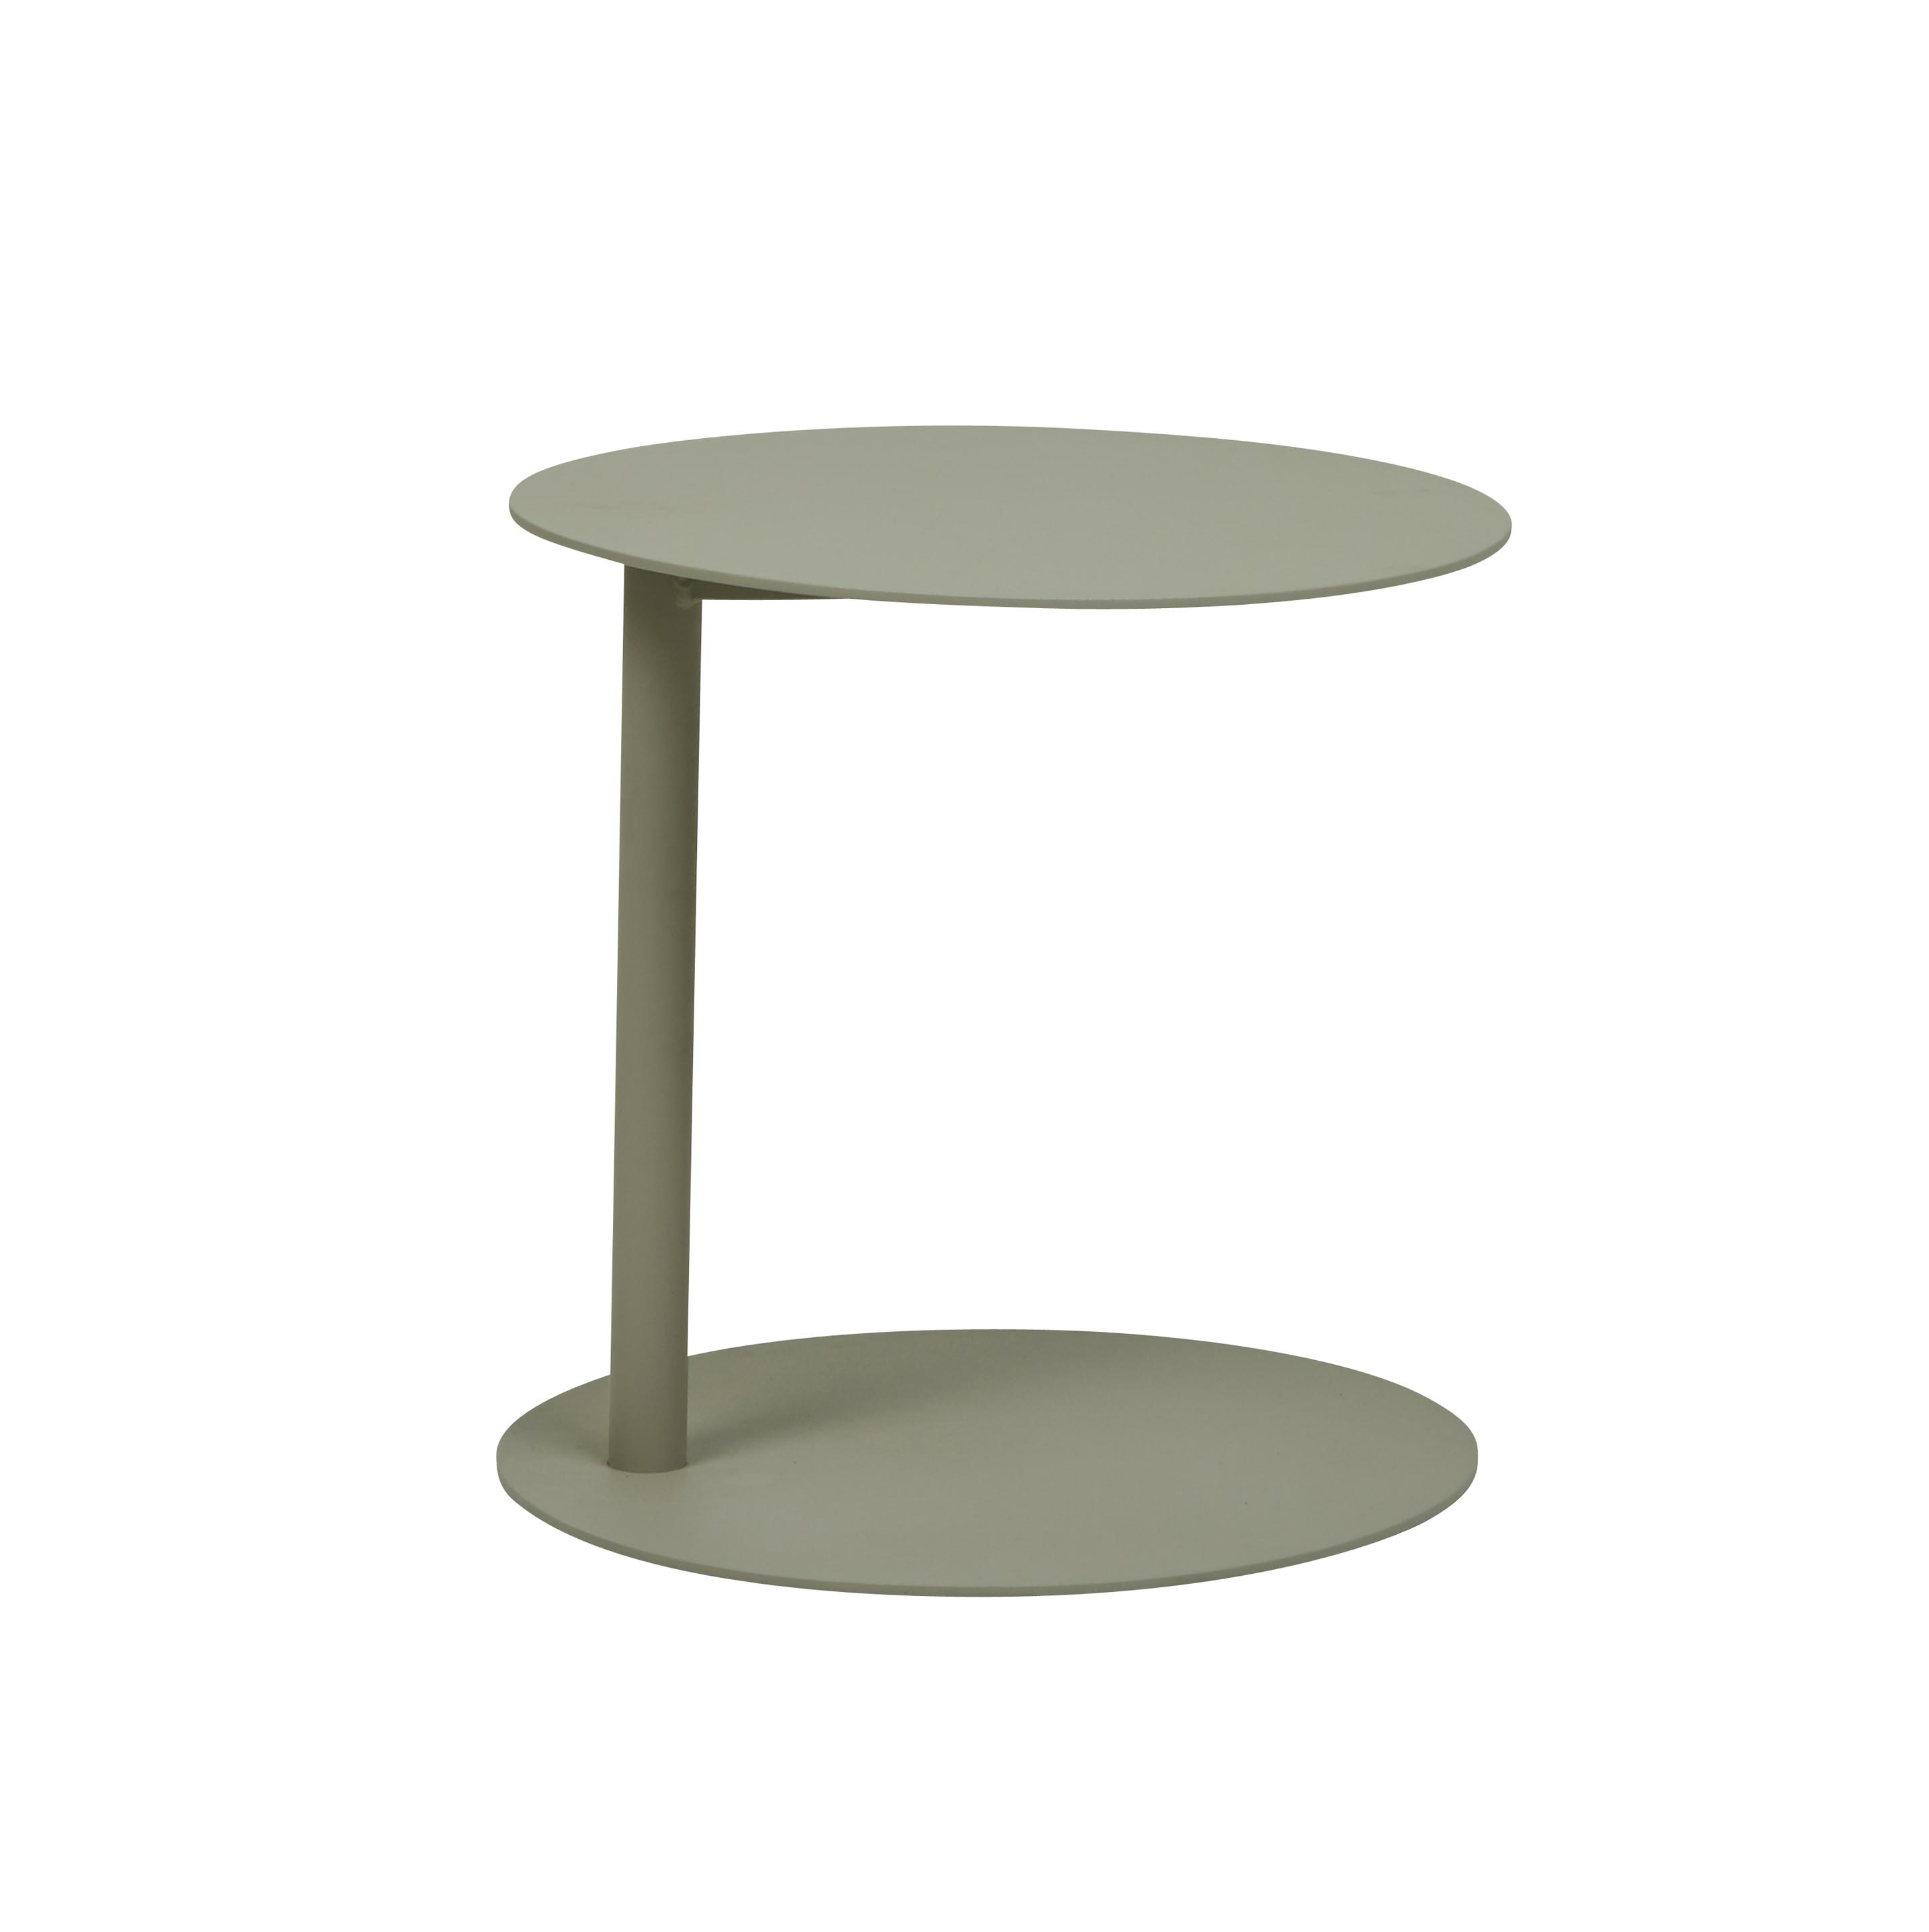 Furniture Hero-Images Coffee-Side-Tables-and-Trolleys aperto-ali-round-side-table-02